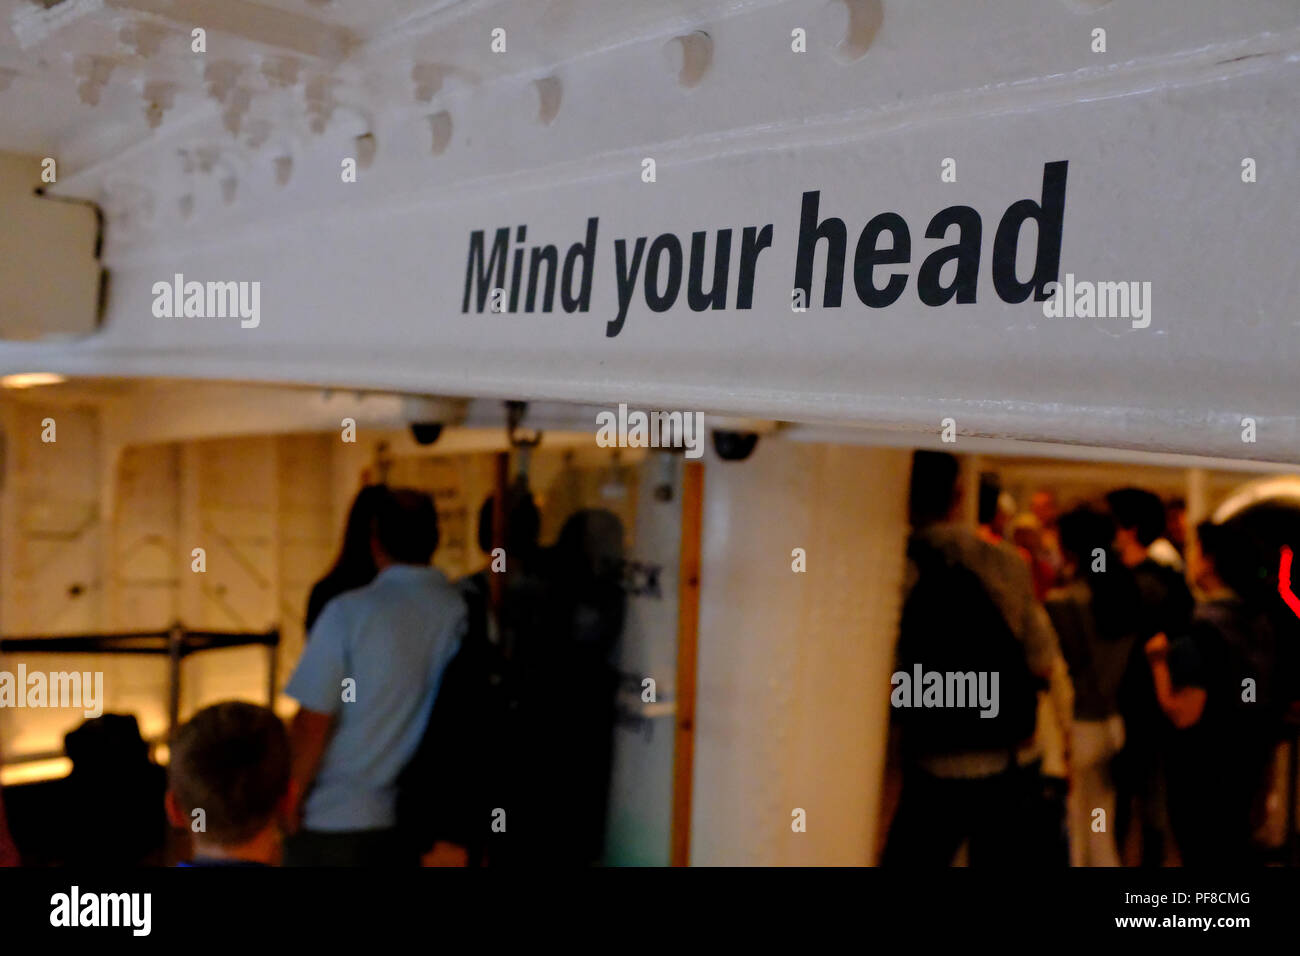 'Mind your head' sign inside The Cutty Sark at Greenwich London UK - Stock Image